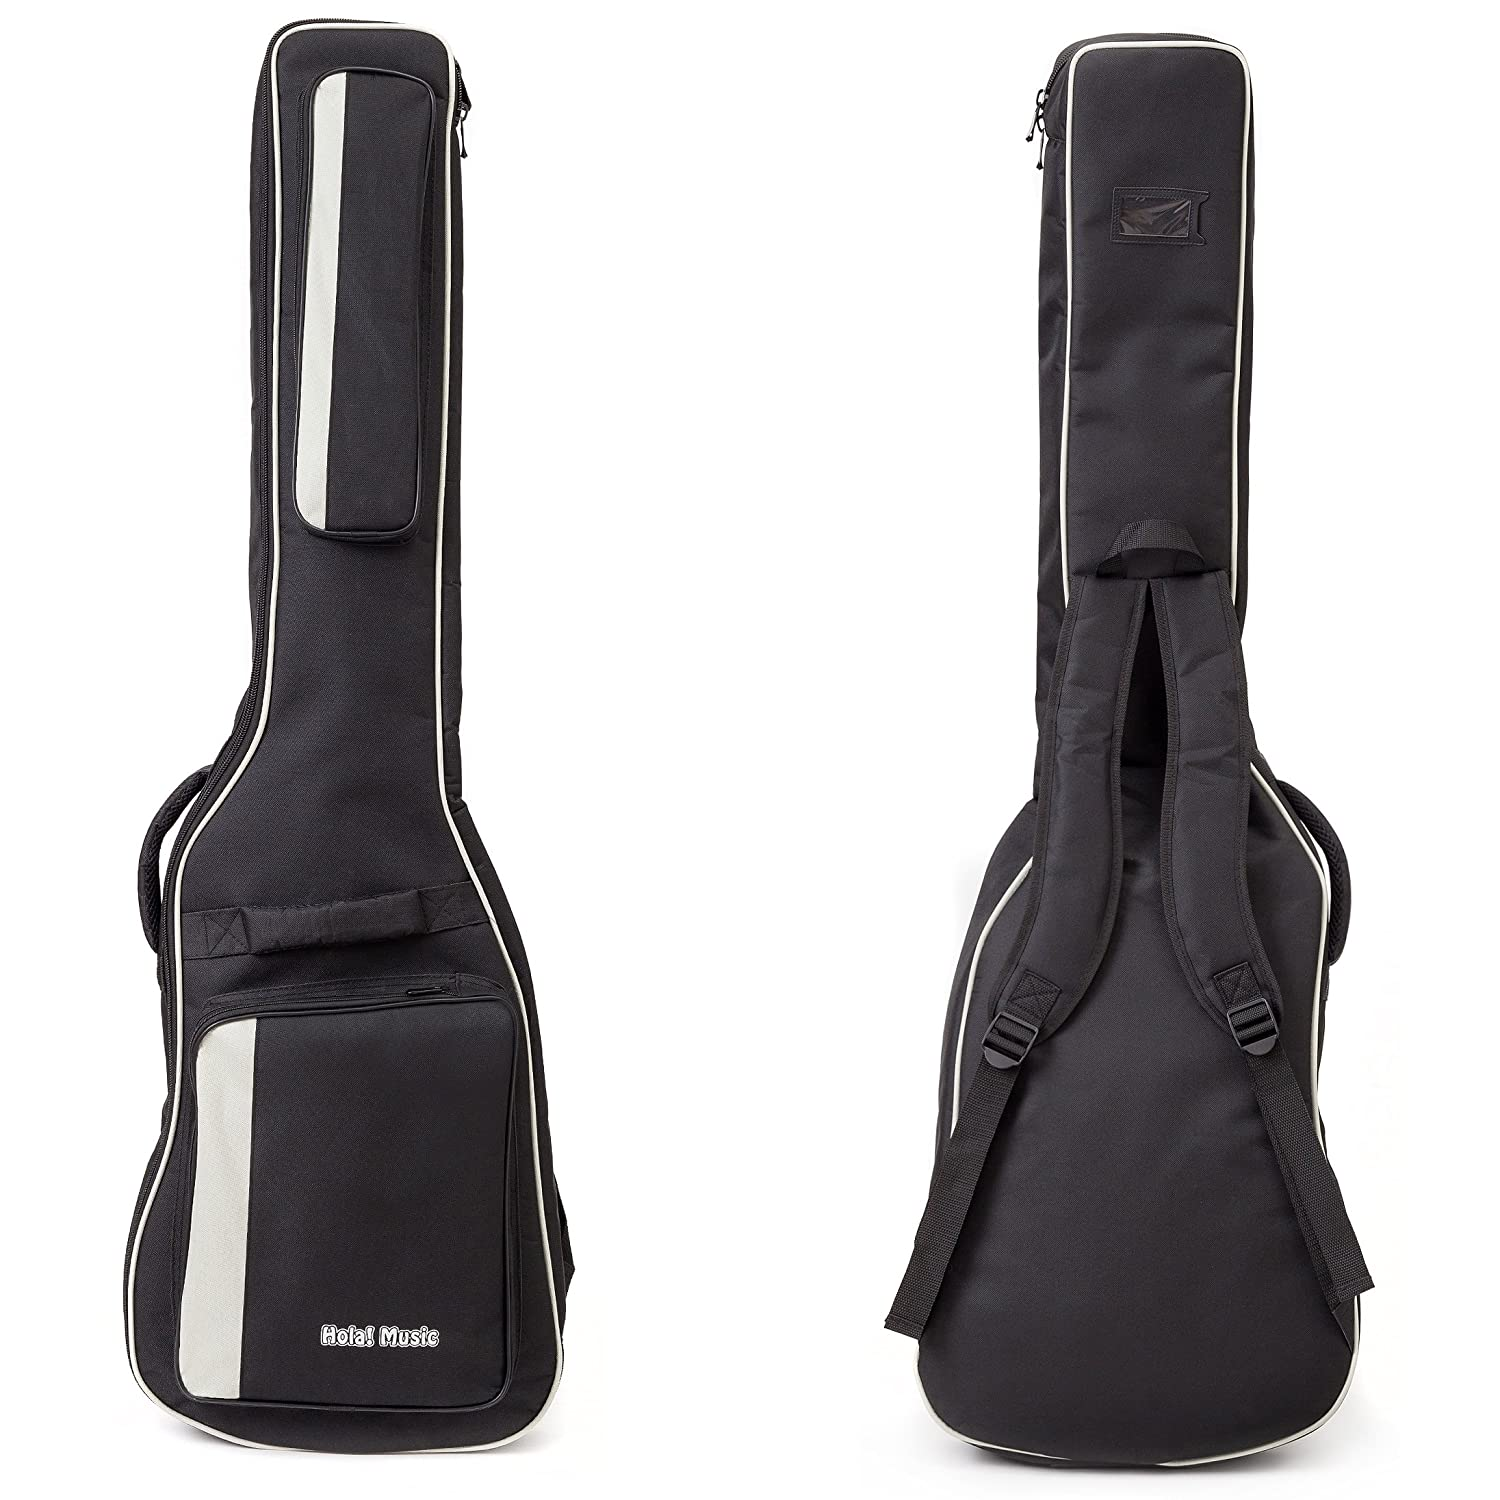 Bass Guitar Gig Bag by Hola! Music, Deluxe Series with 15mm Padding, Black 4334239361